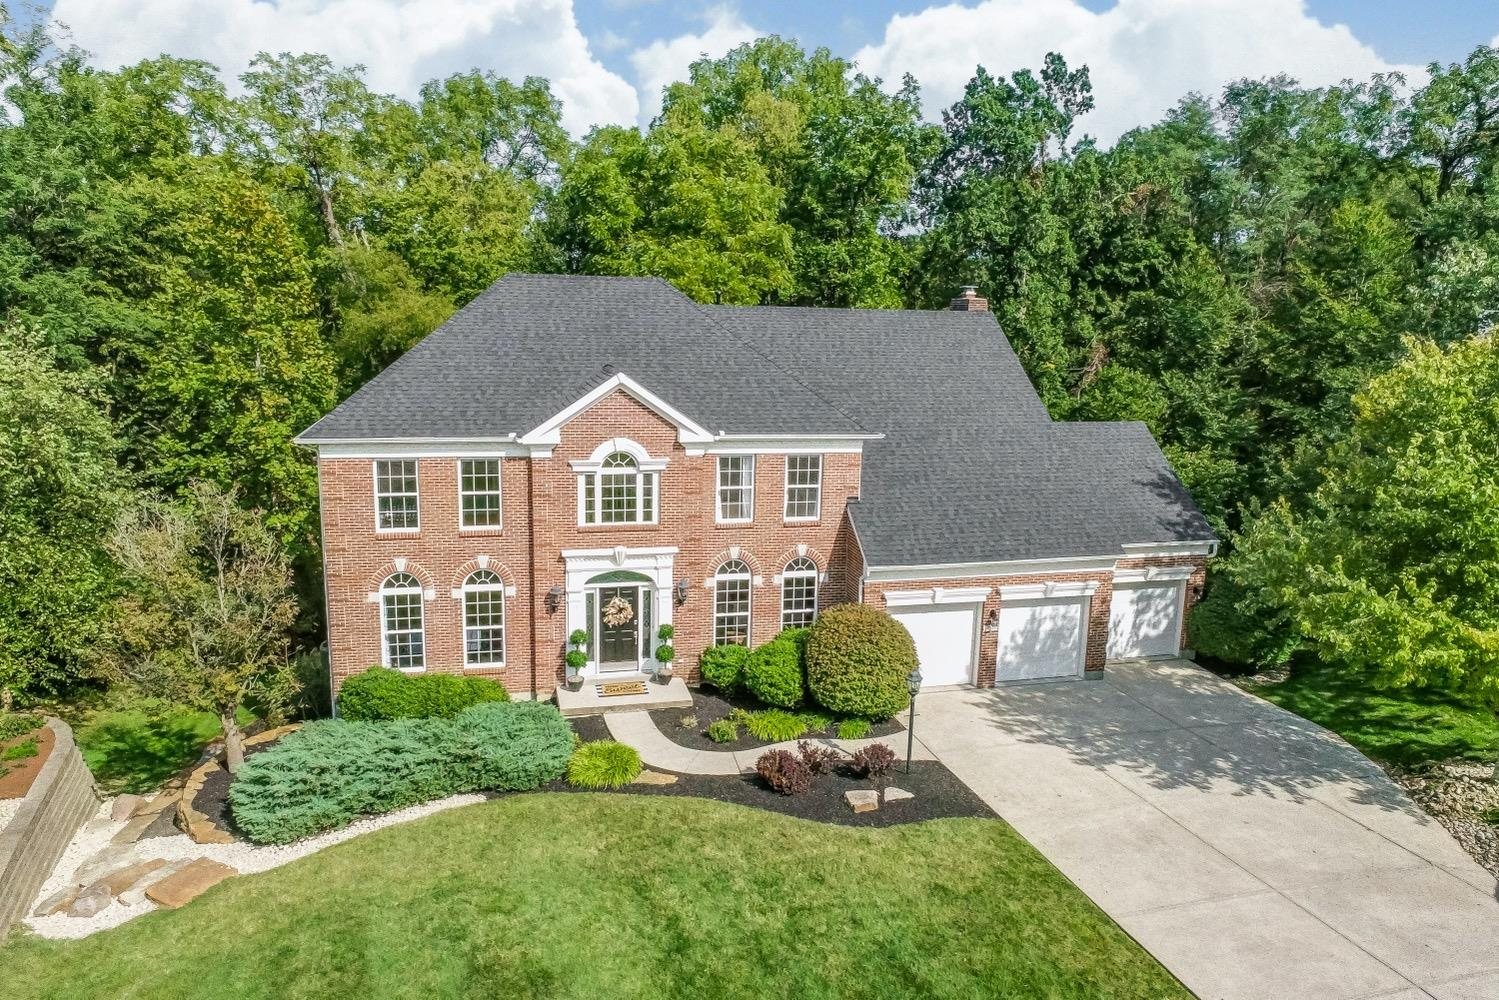 6046 Windy Hollow Ct Miami Twp. (East), OH